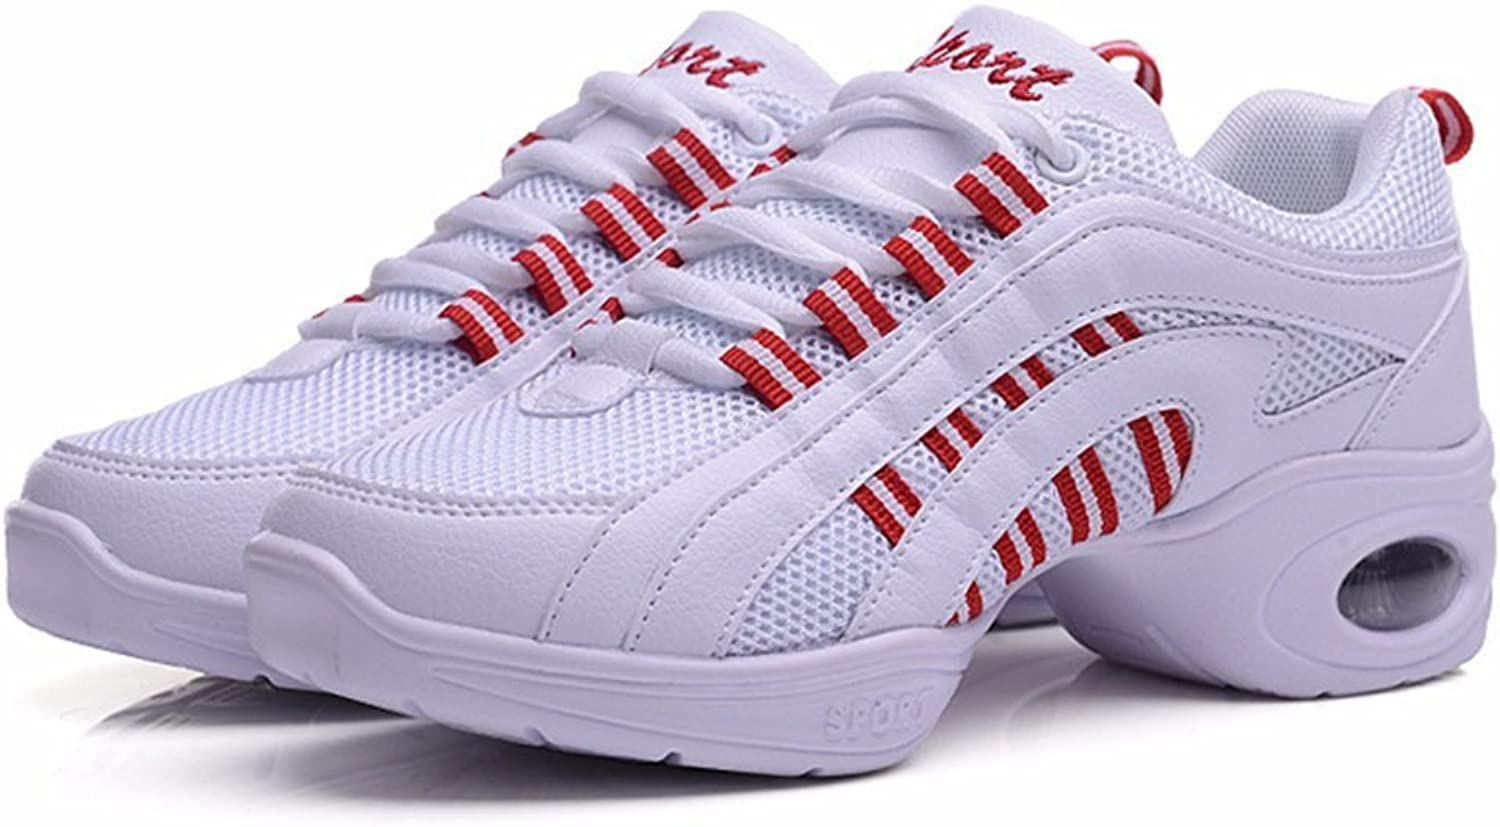 Exing Womens's shoes New Modern Dance shoes,Casual Sneakers,Gym Sports Air-Cushion shoes,Ladies Invisible Increase shoes